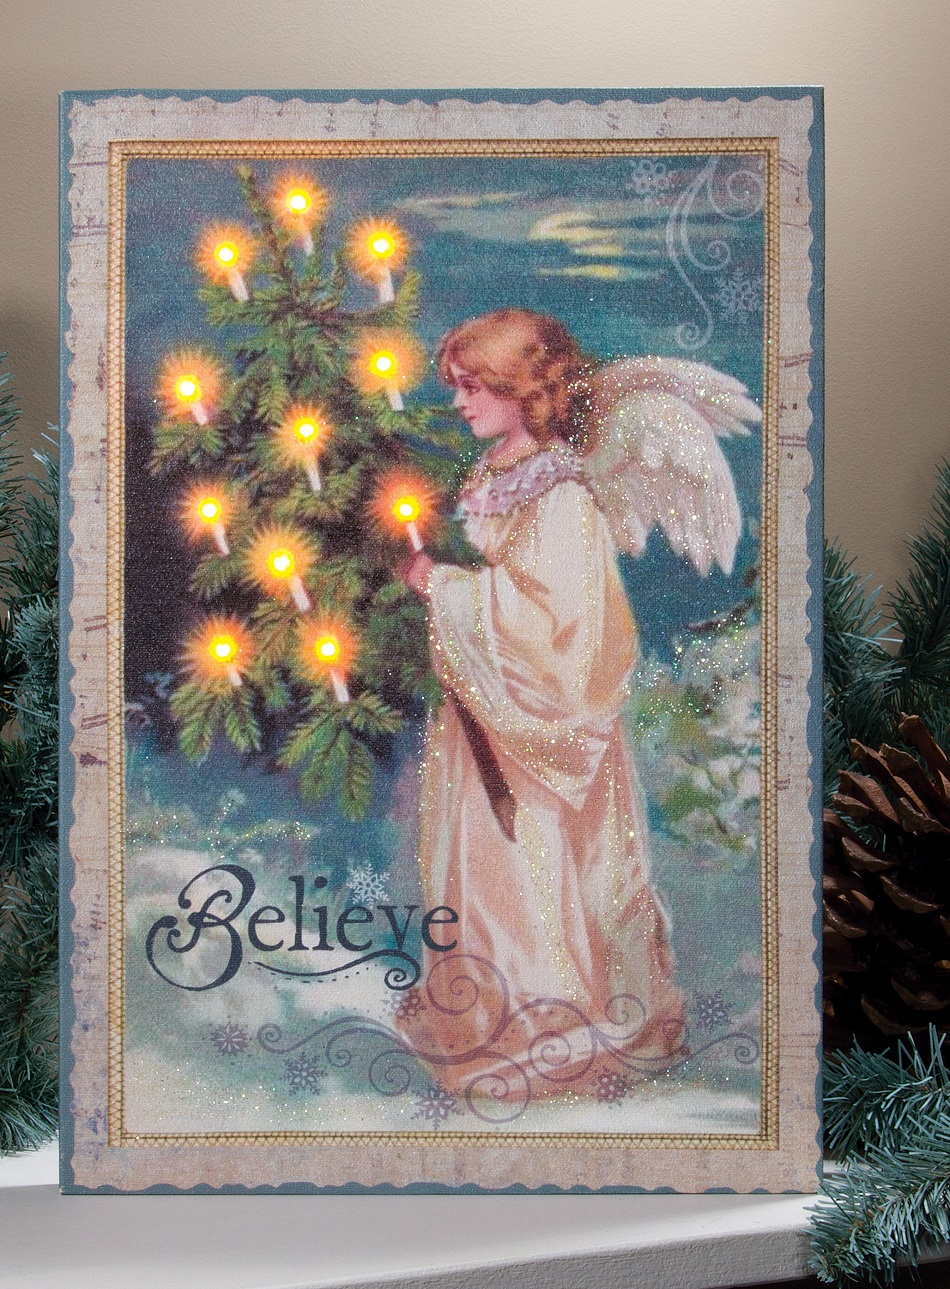 Home Depot Illuminated Canvas : Believe angel with vintage old fashion christmas tree